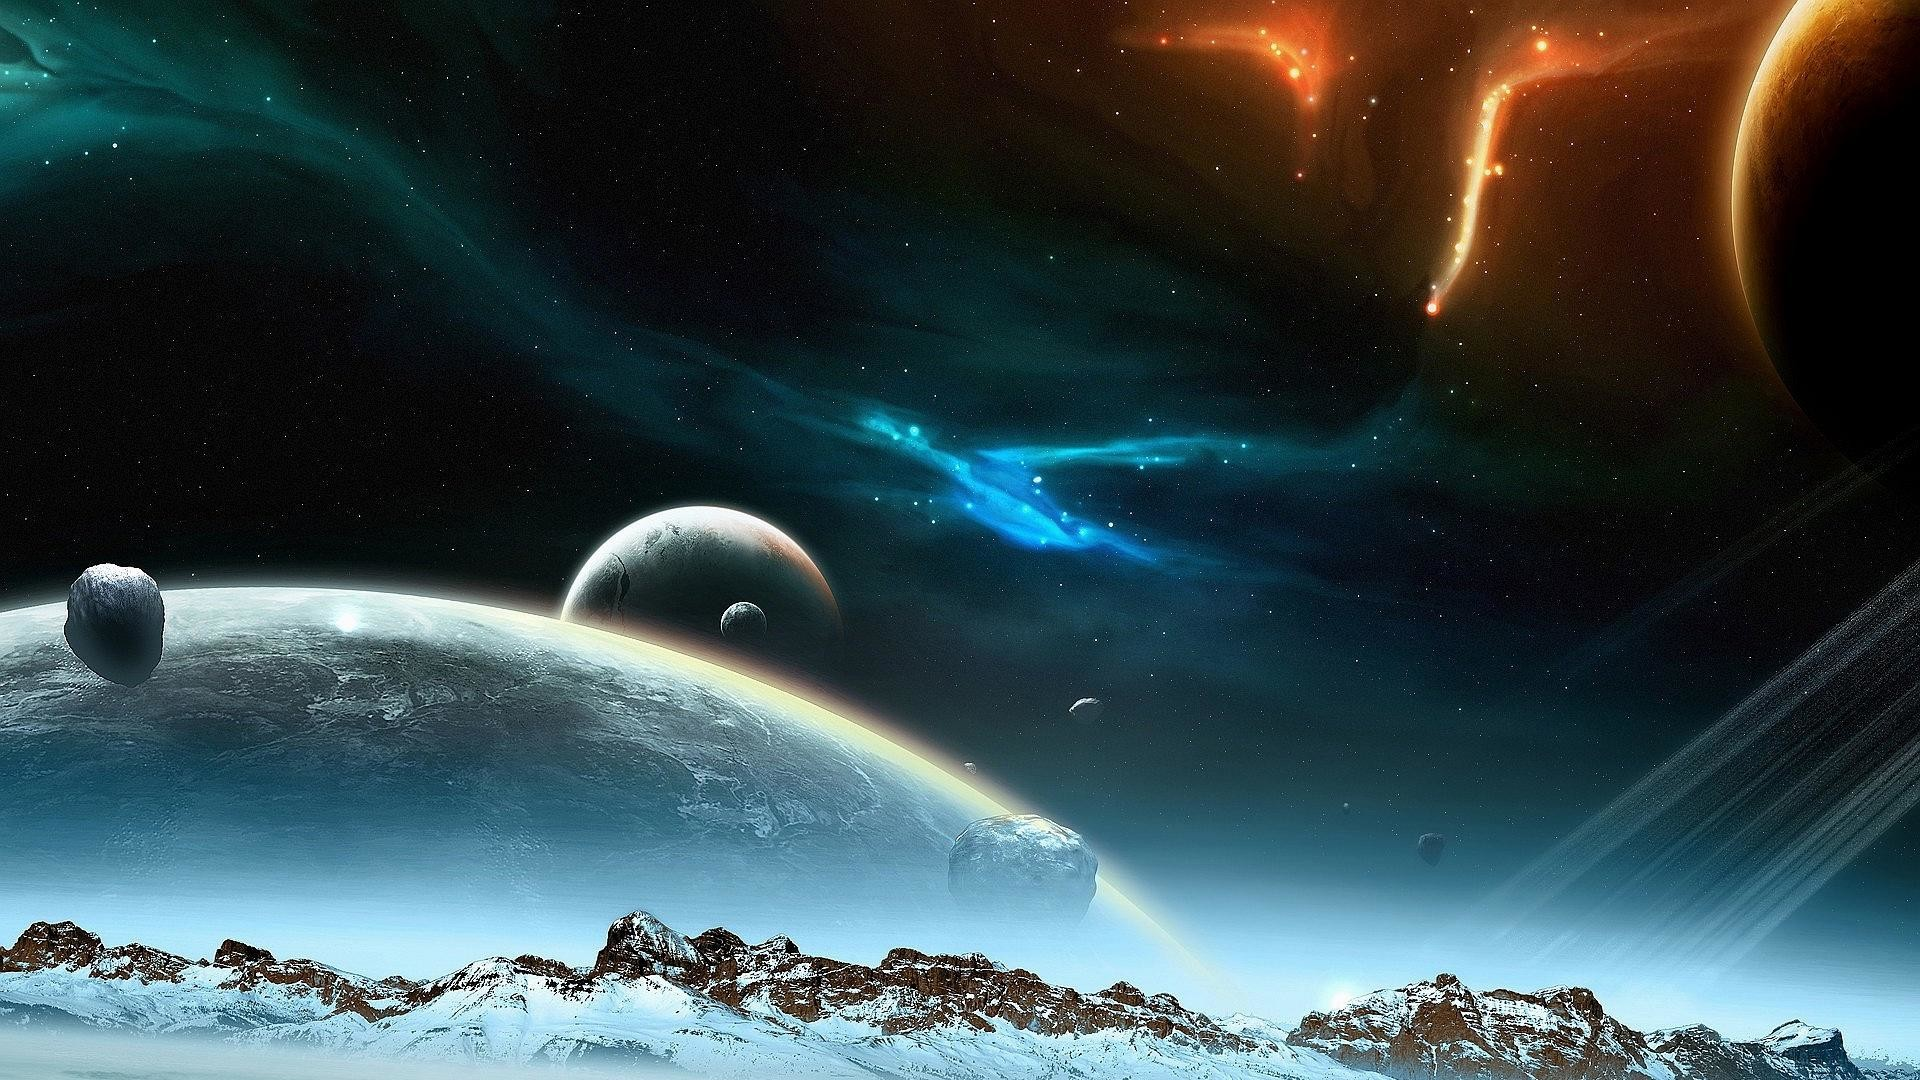 Hd space wallpapers 1080p 70 images - Space backgrounds 1920x1080 ...